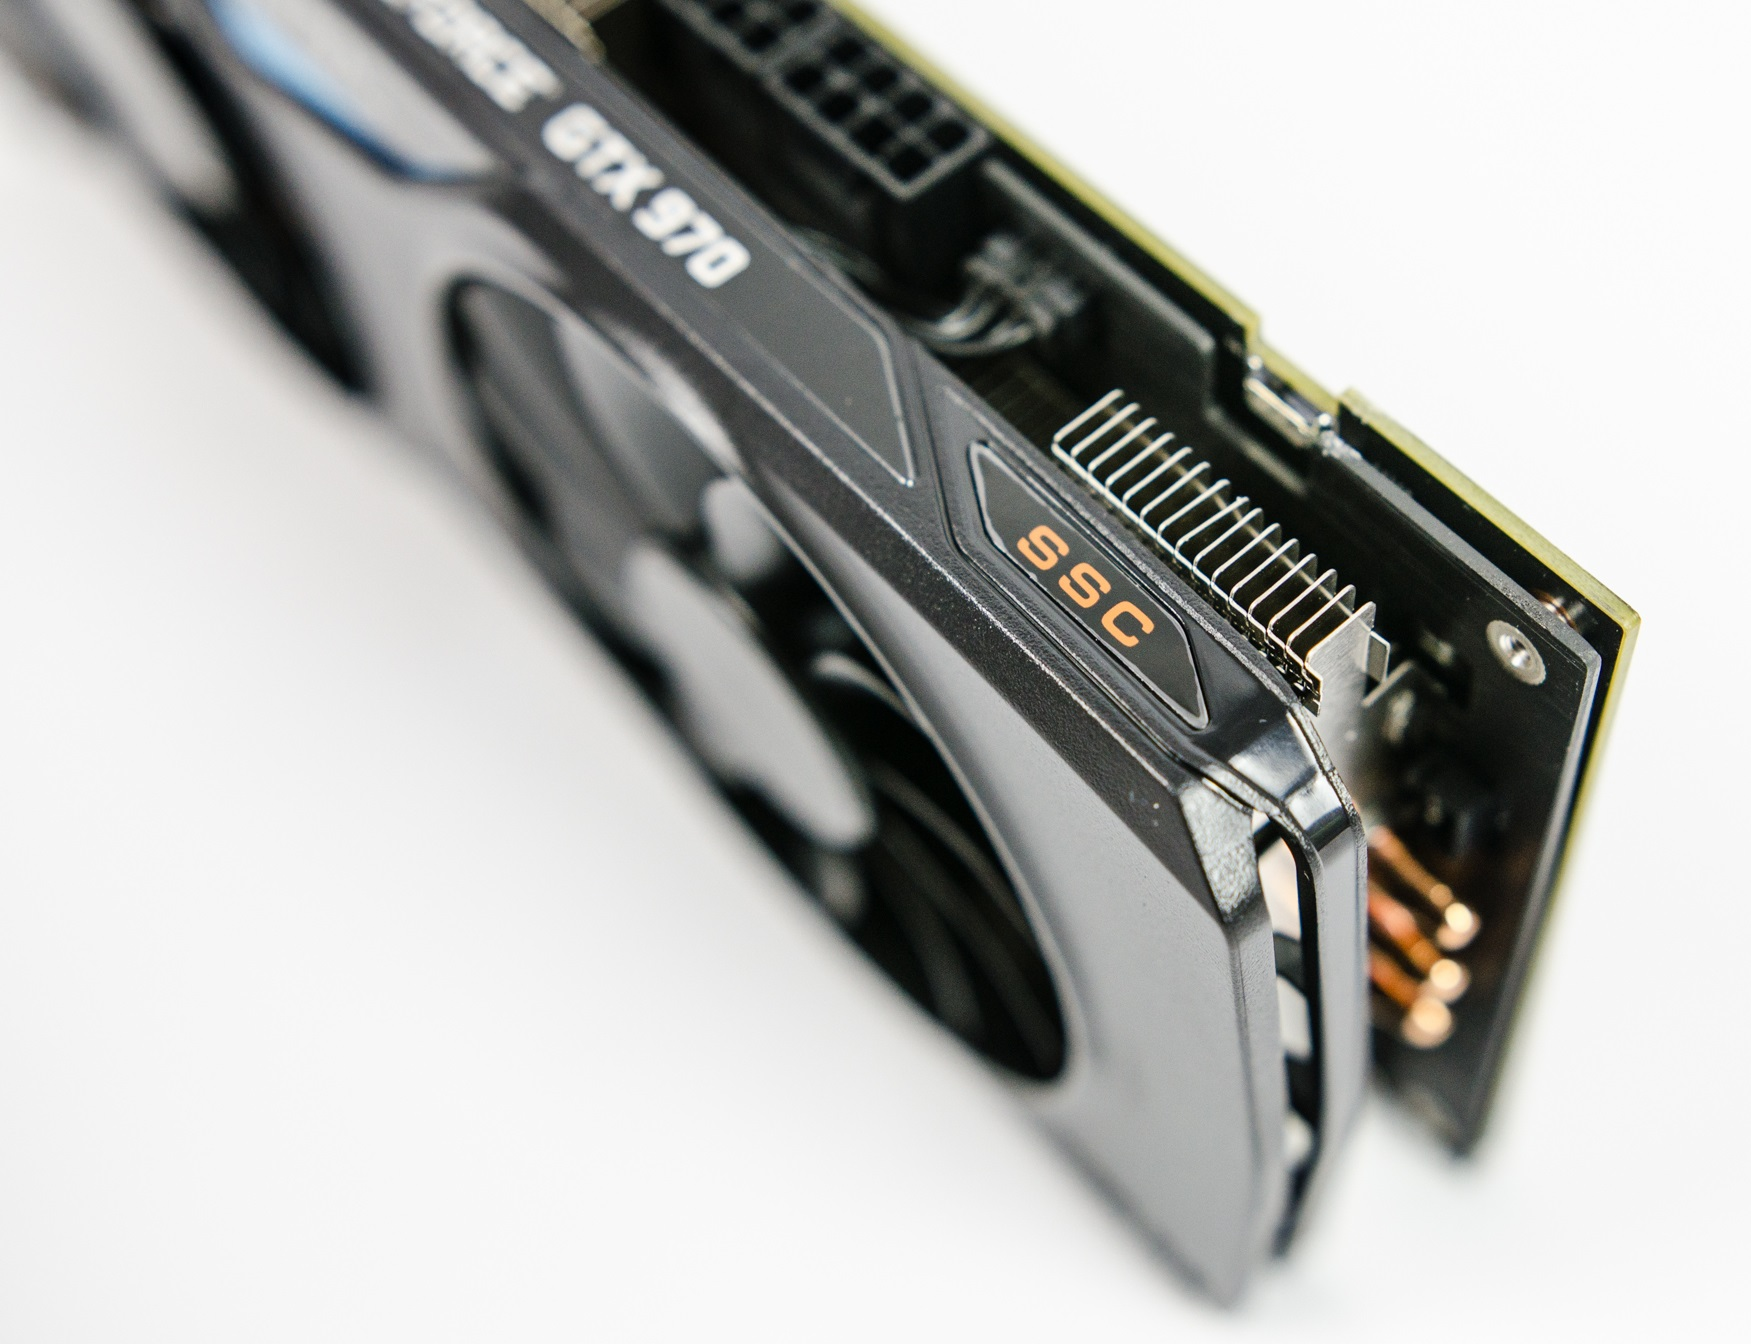 Evga Geforce Gtx 970 Ssc Acx 2 0 Review Extremerigs Net